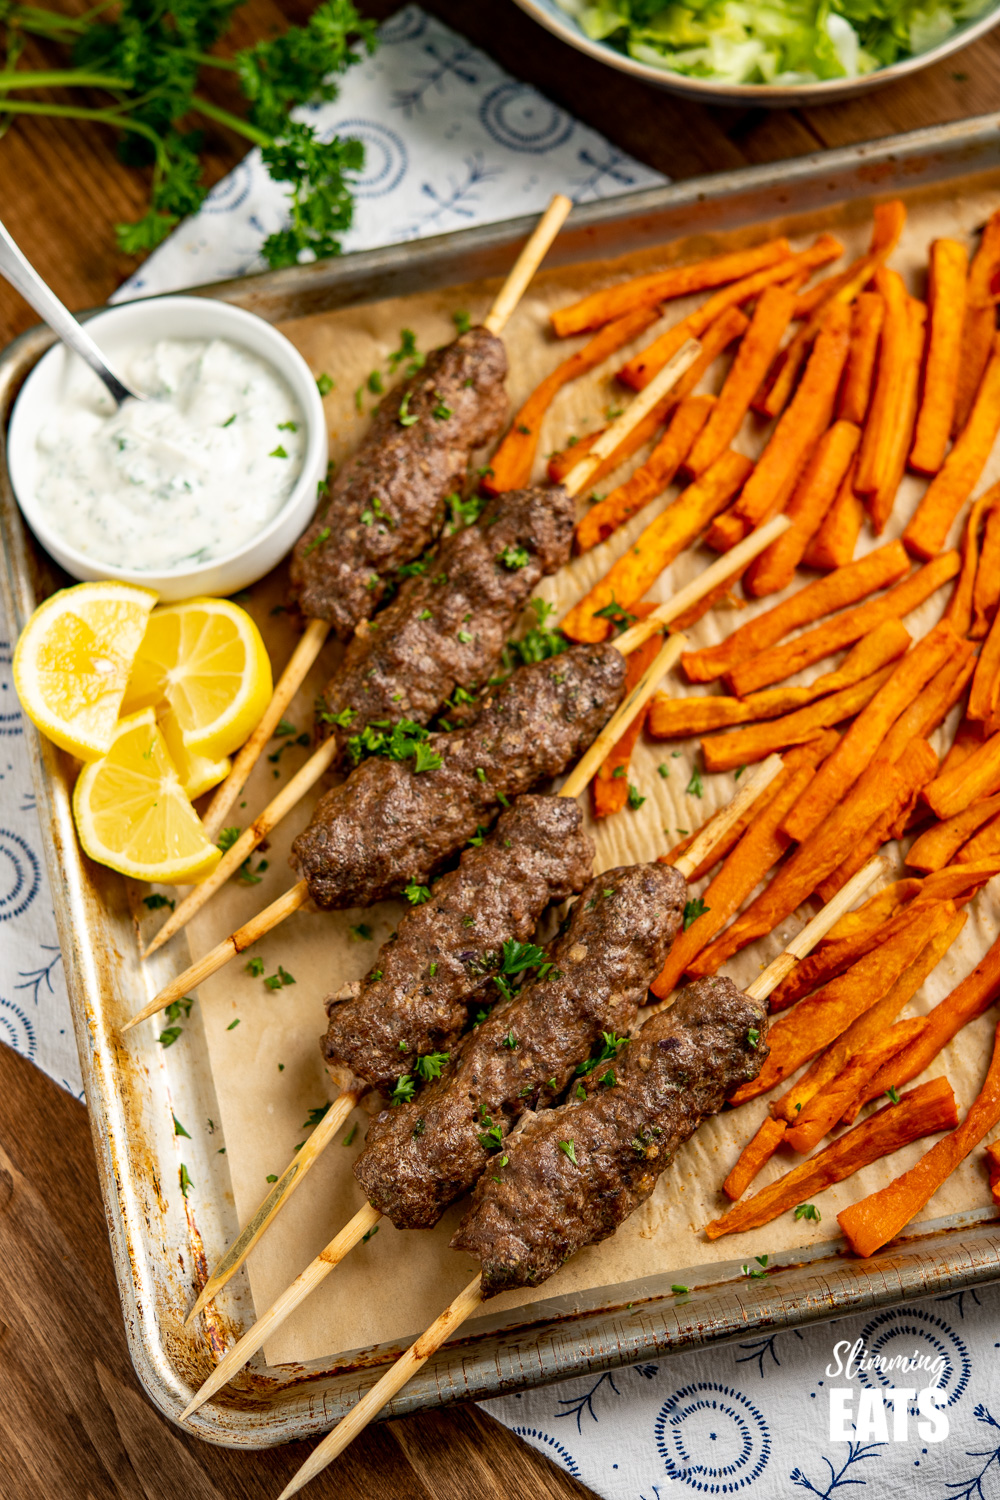 Beef Kofta Tray Bake with skewers or kofta, sweet potato fries, garlic yoghurt sauce and lemon slices on wooden board.